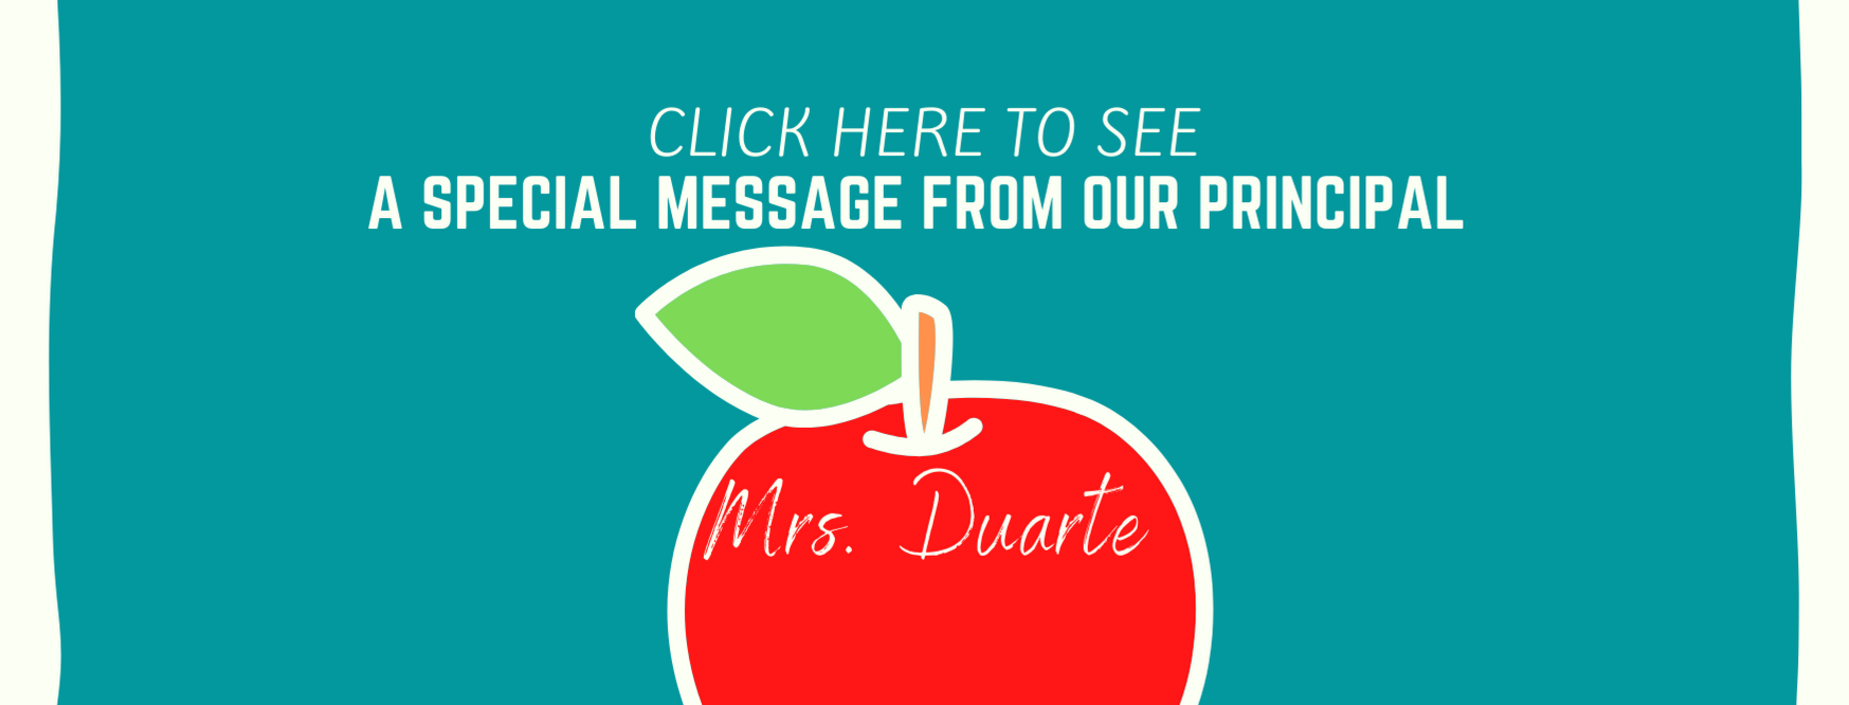 A Special Message from Our Principal Mrs. Duarte